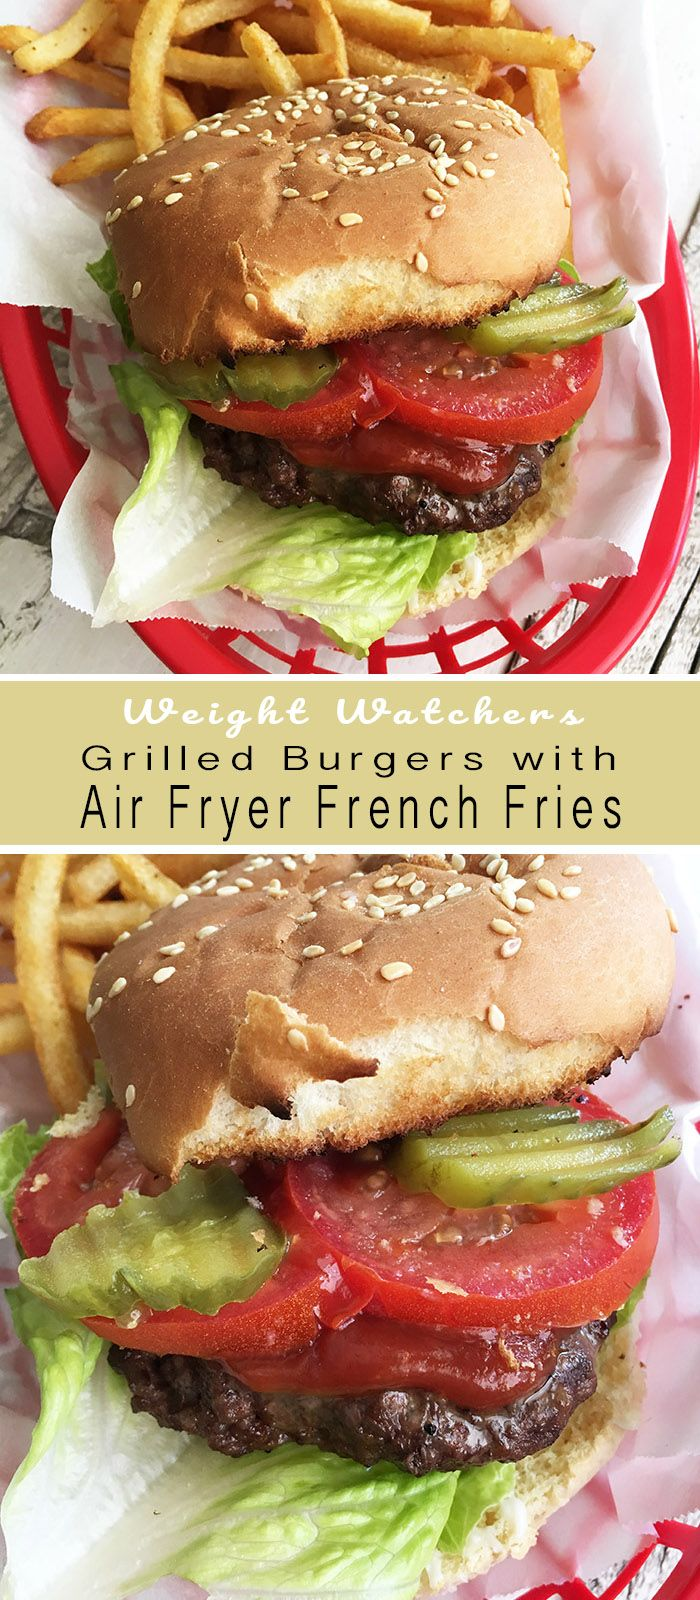 Grilled Burgers with Air Fryer French Fries Recipe